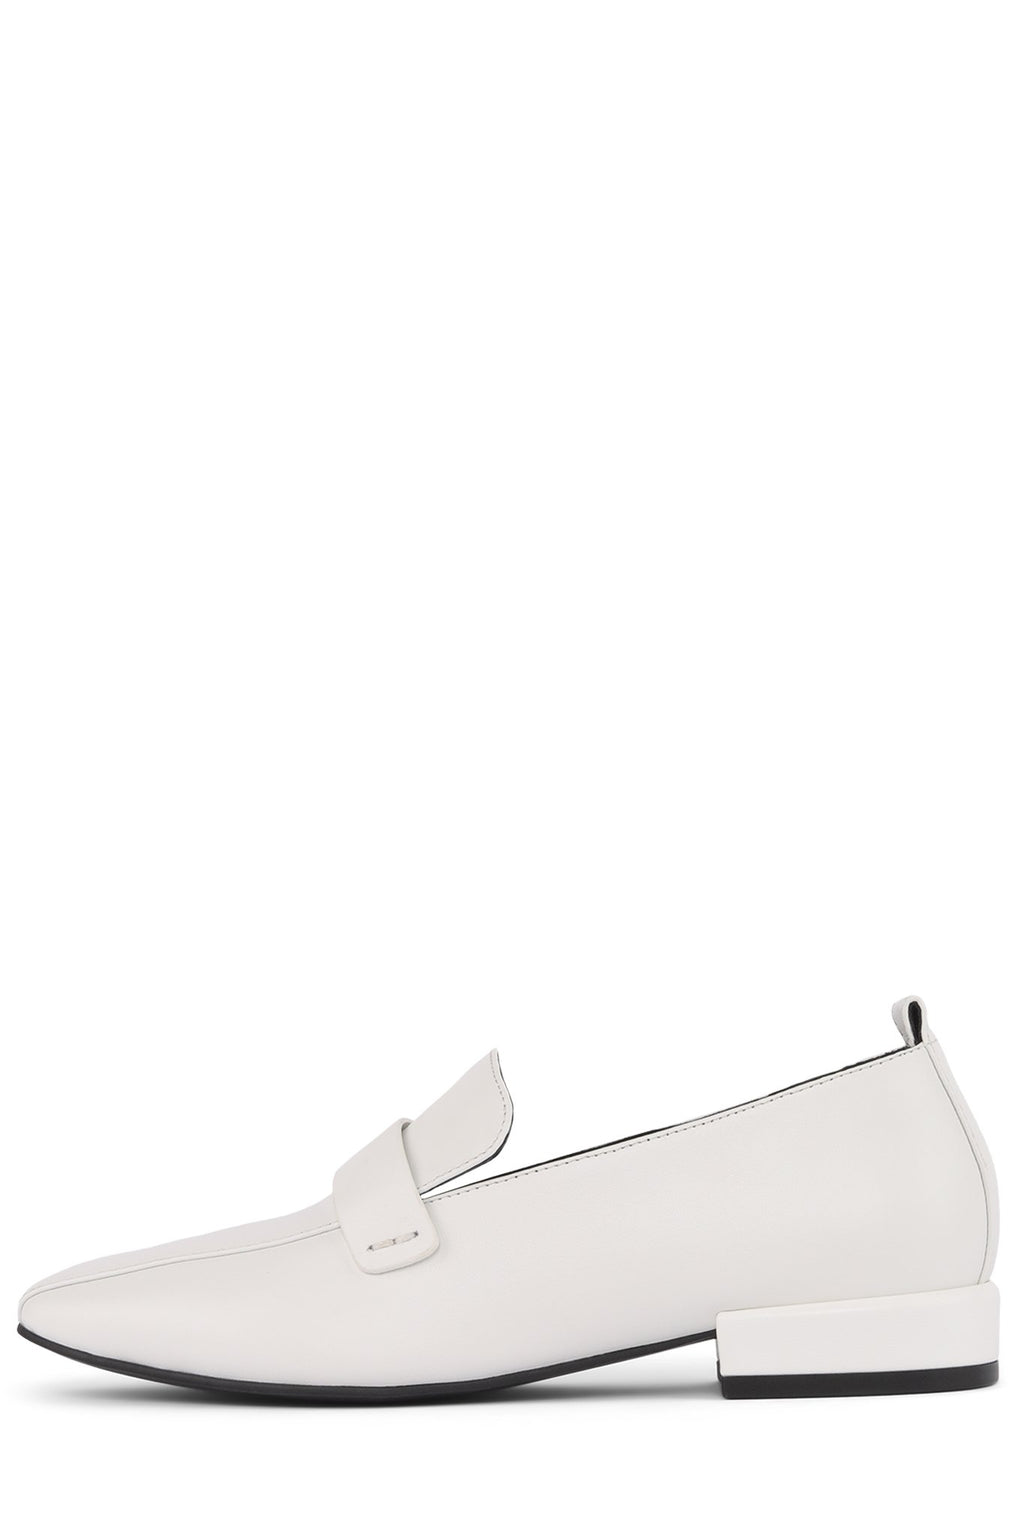 MORITZ Loafer Jeffrey Campbell White 5